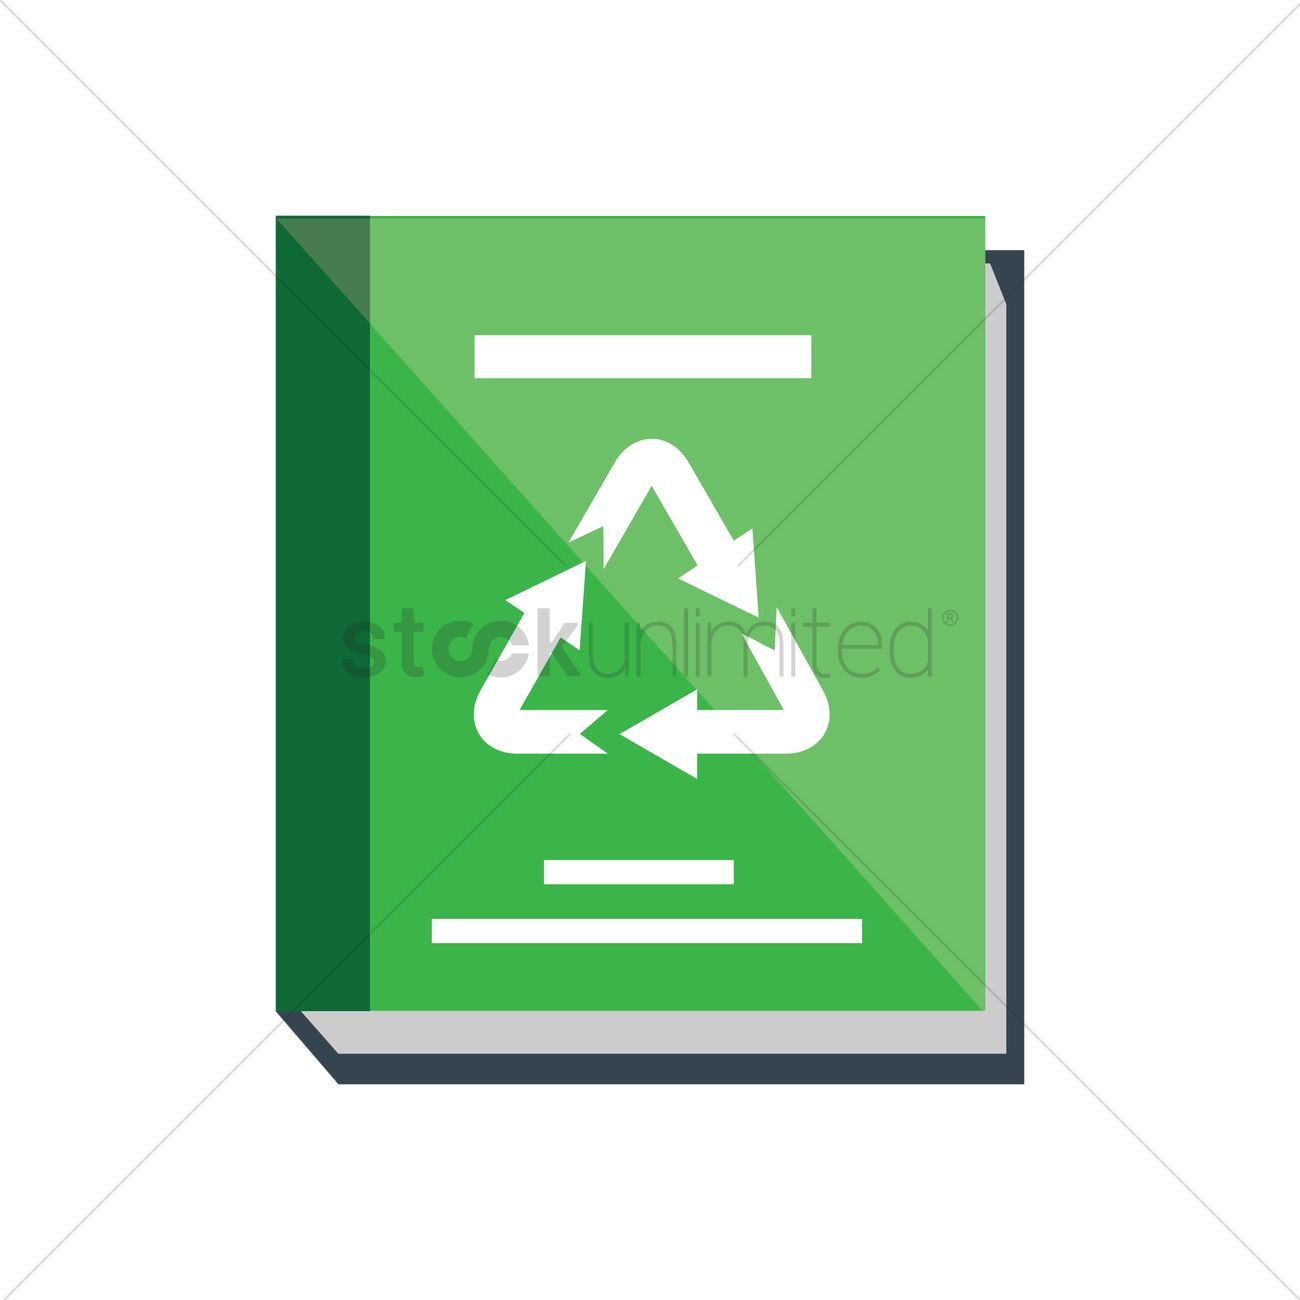 Book With A Recycle Symbol Vector Image 1272231 Stockunlimited